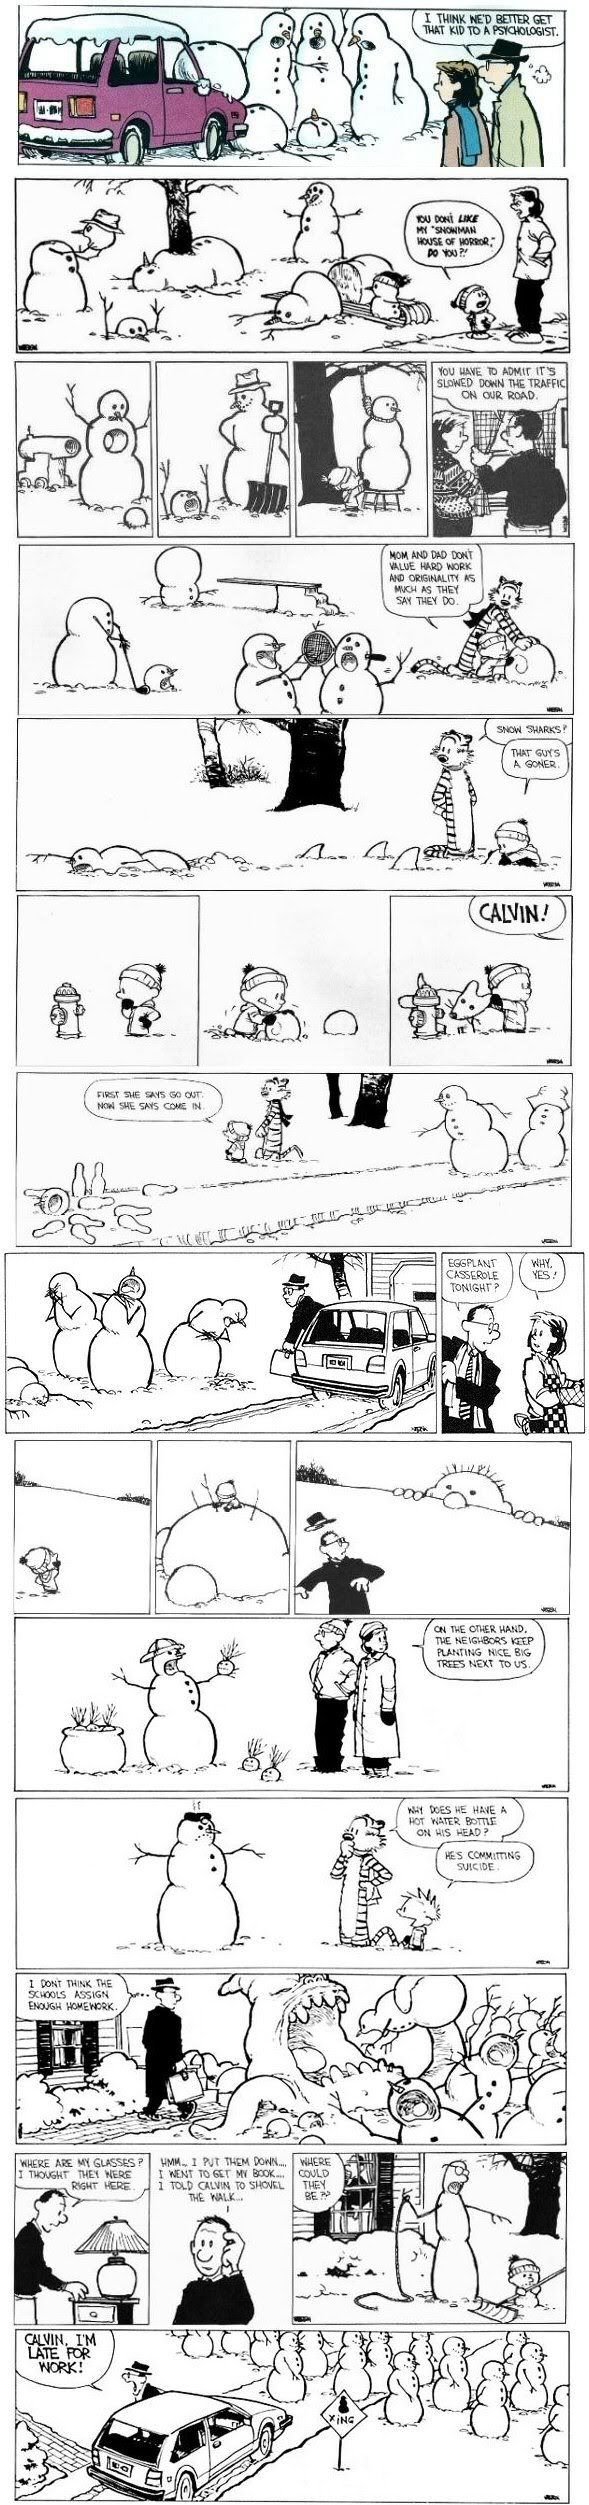 Calvin & Hobbes snowmen - this is hilarious - why didn't we think of this when we were kids???